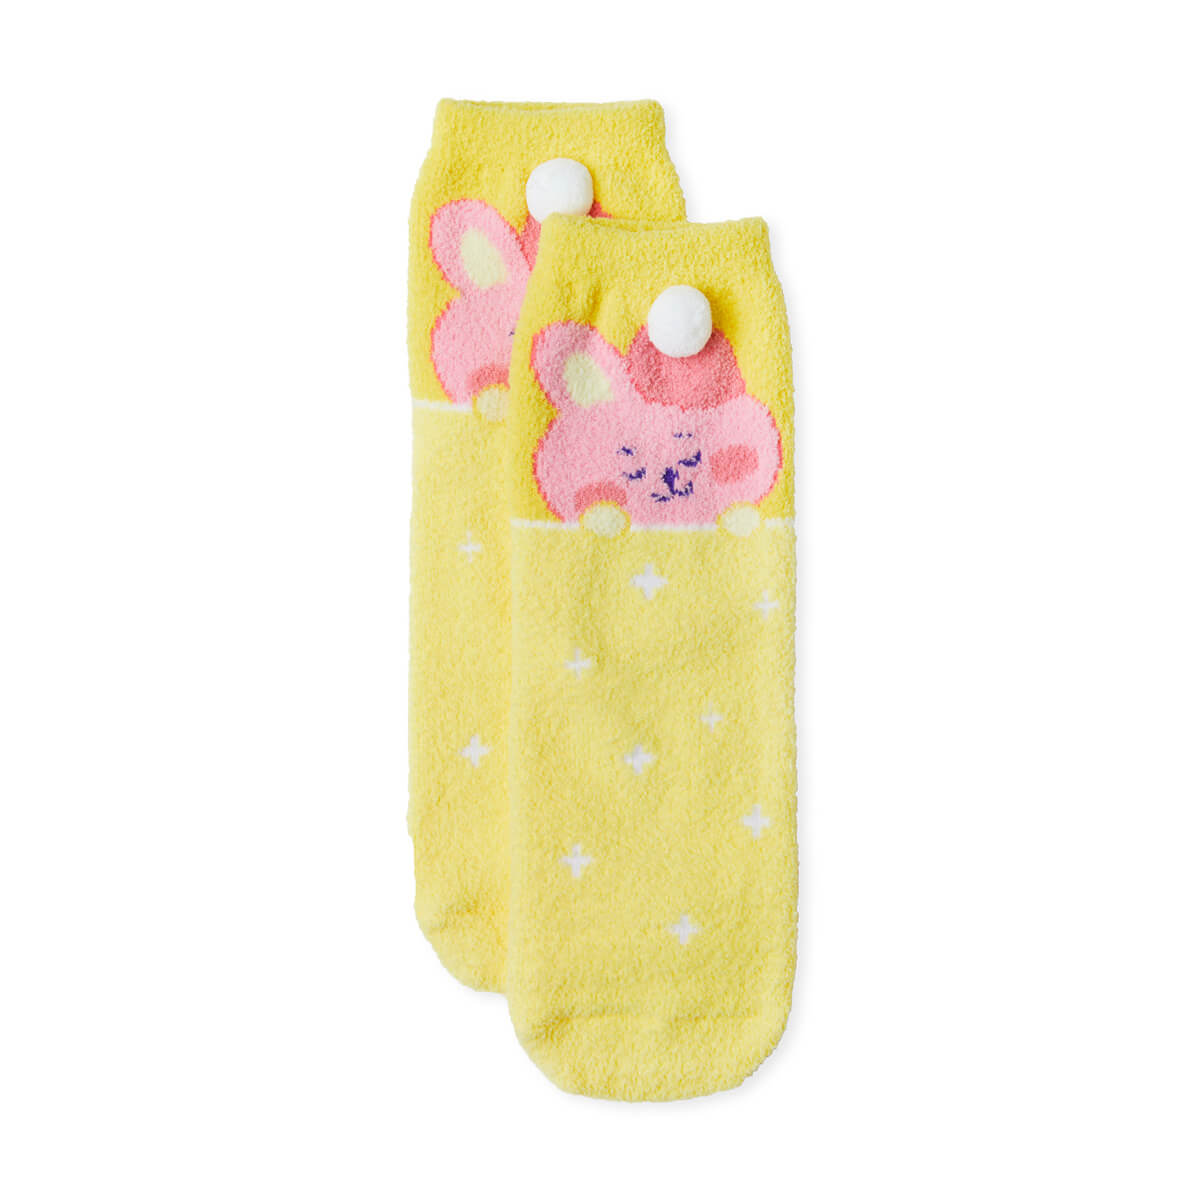 BT21 COOKY Dream of Baby Fuzzy Sleep Socks